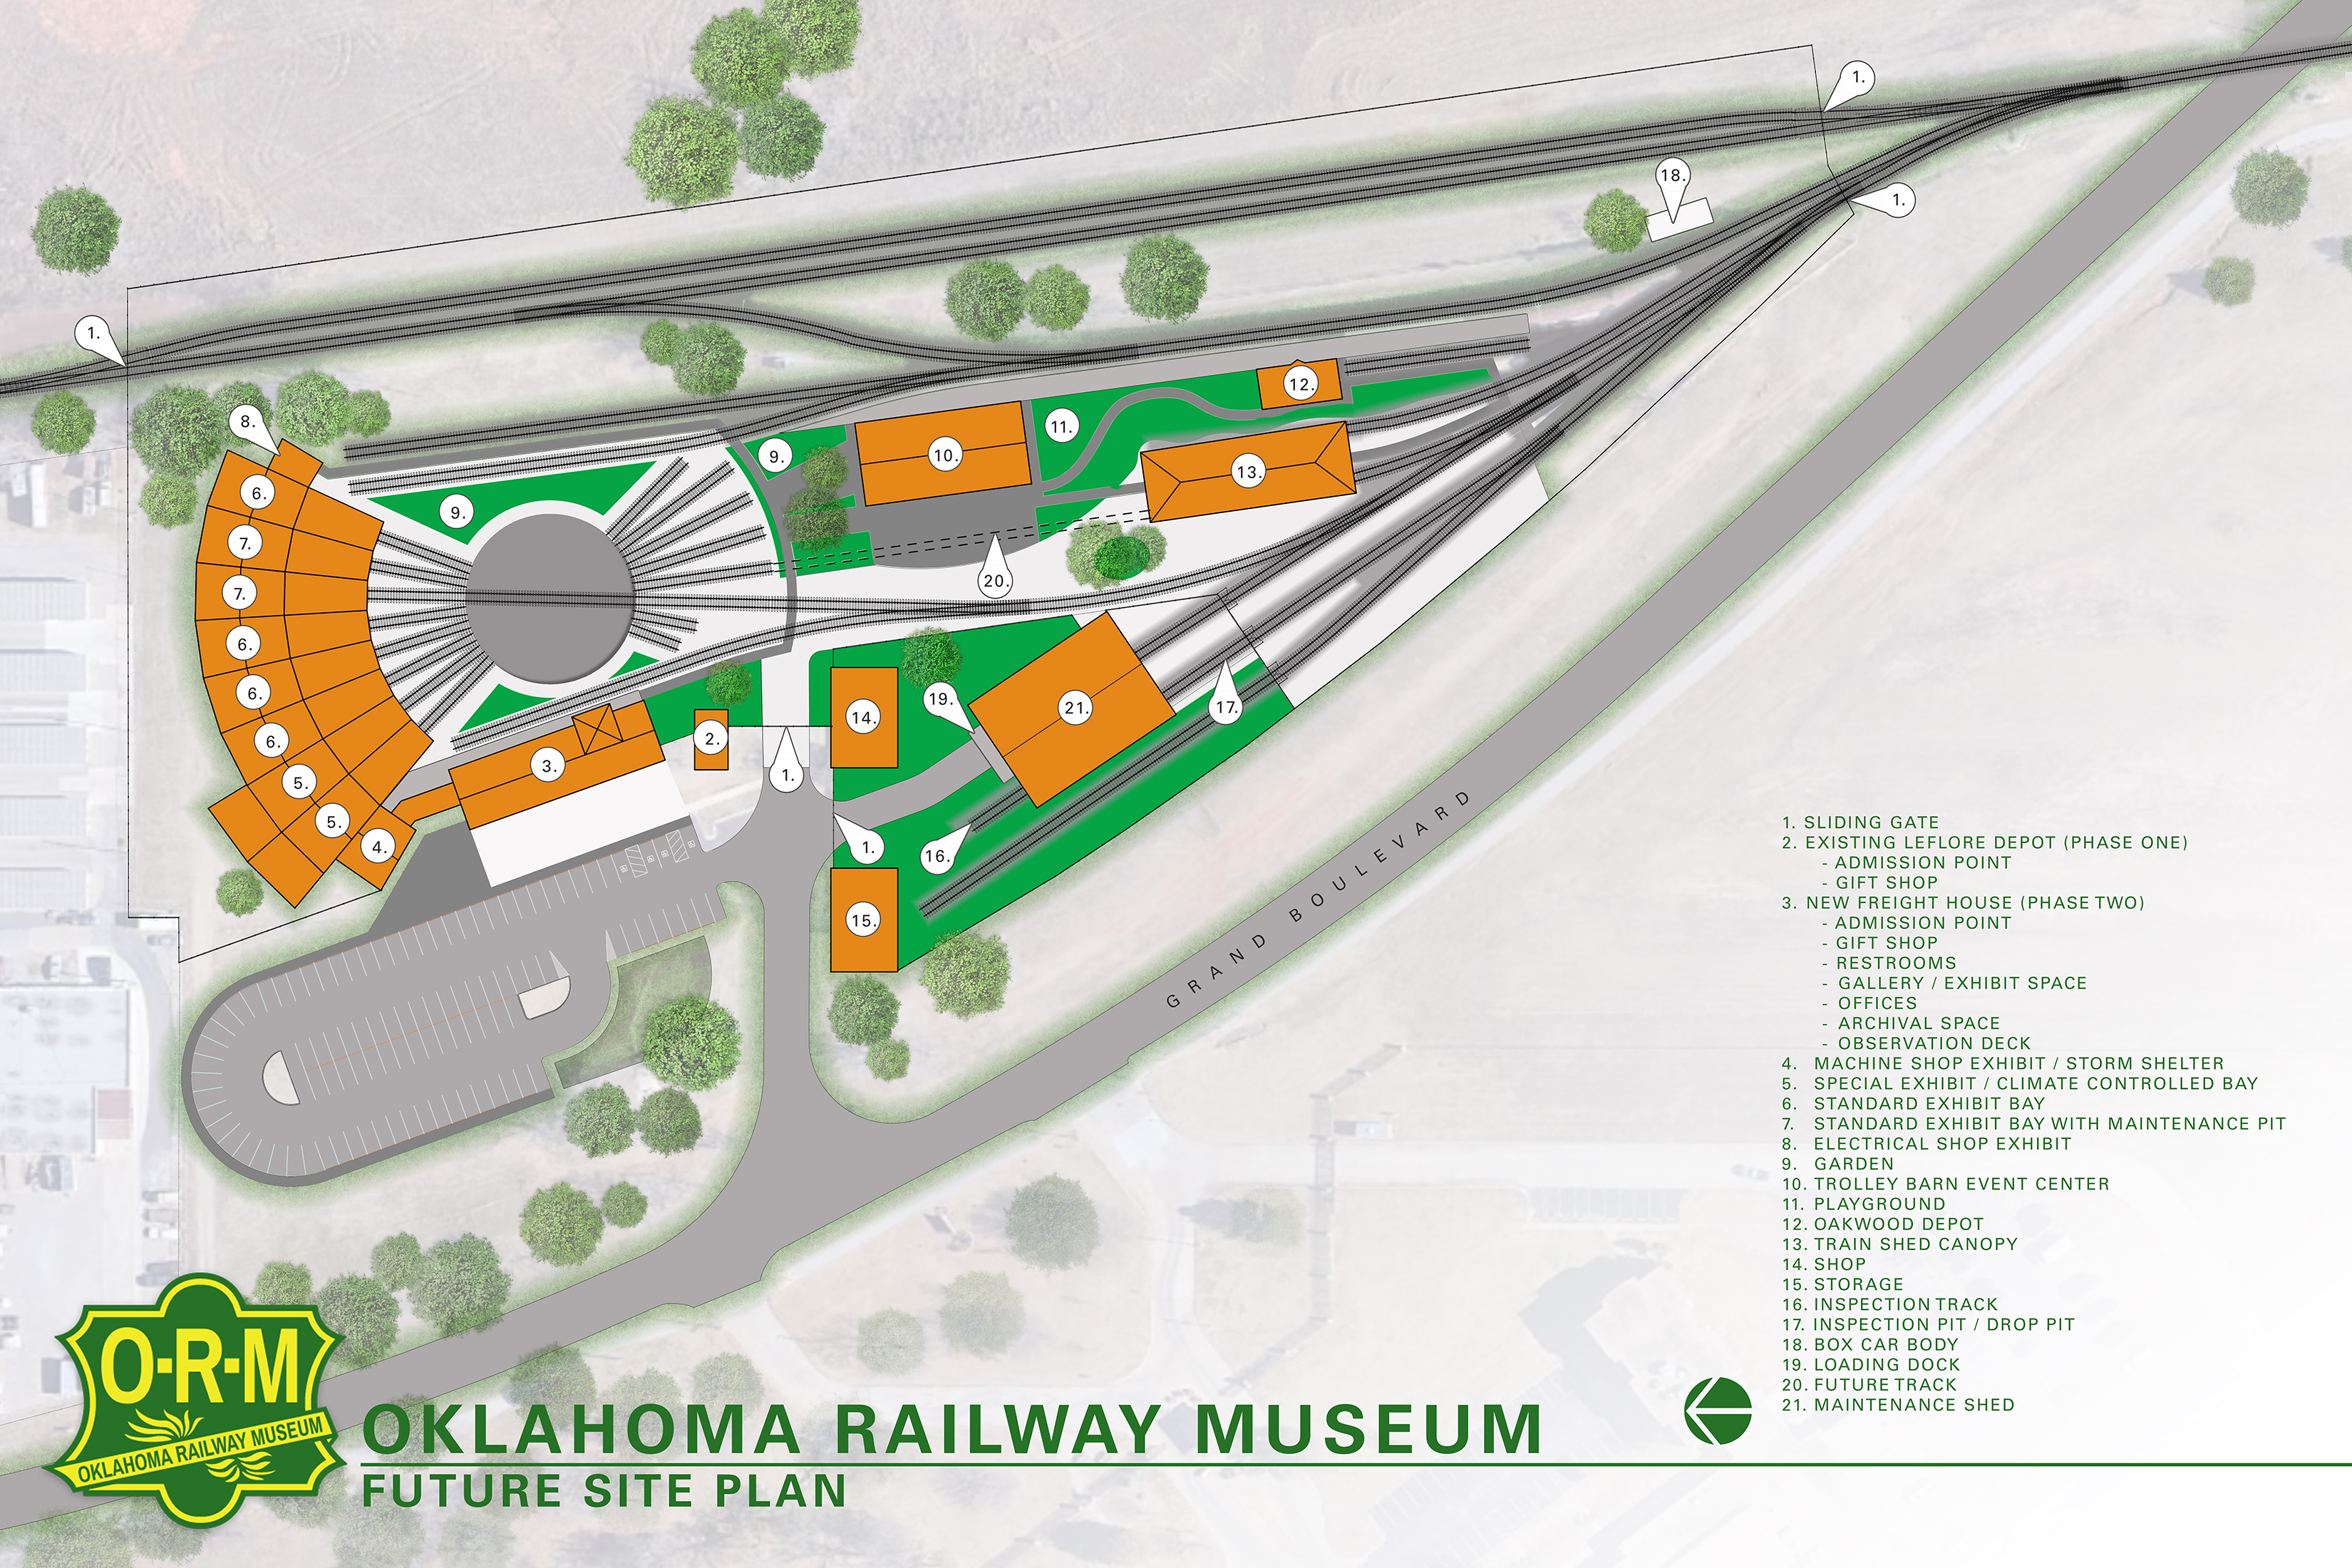 Museum Expansion Project - Oklahoma Railway Museum on ho scale roundhouse plans, walthers track plans, 4x8 ho track plans, engine facility track plans, track and roundhouse steam engine plans, n scale roundhouse plans, o gauge roundhouse plans, railroad turntable construction plans, model railroad roundhouse plans,